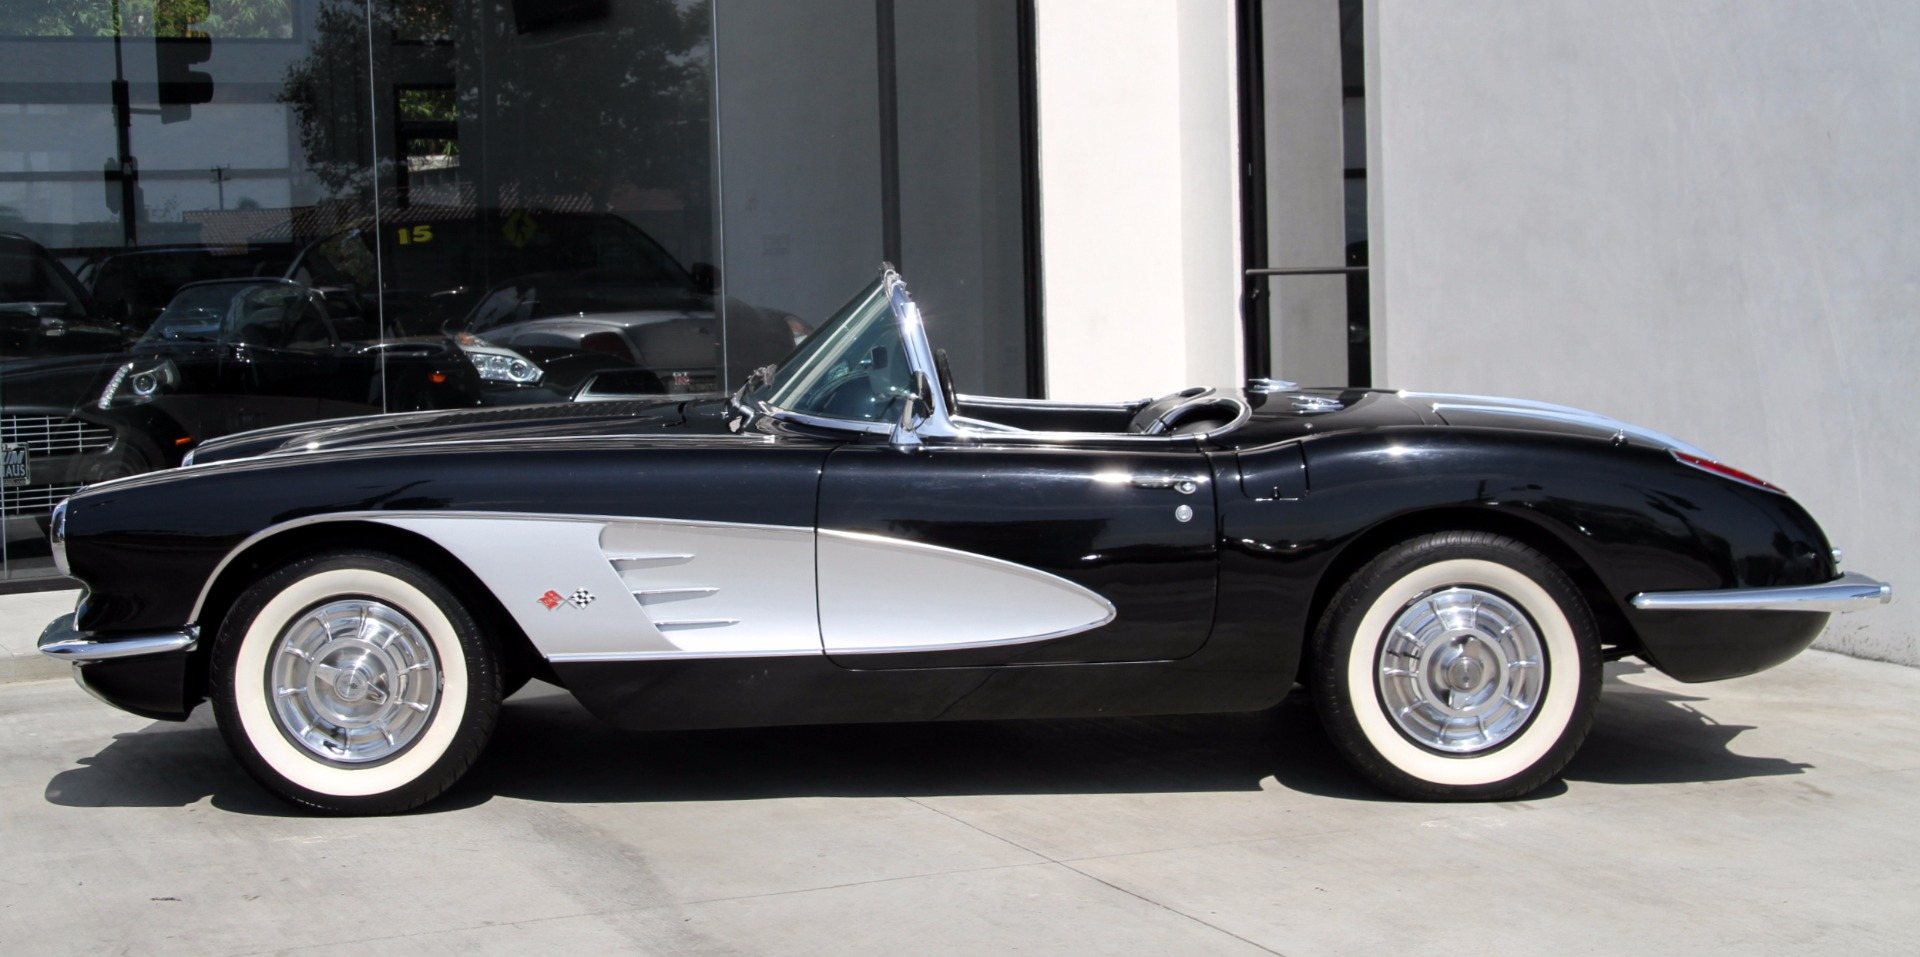 Chevrolet Near Me >> 1958 Chevrolet Corvette Stock # 101139 for sale near Redondo Beach, CA | CA Chevrolet Dealer